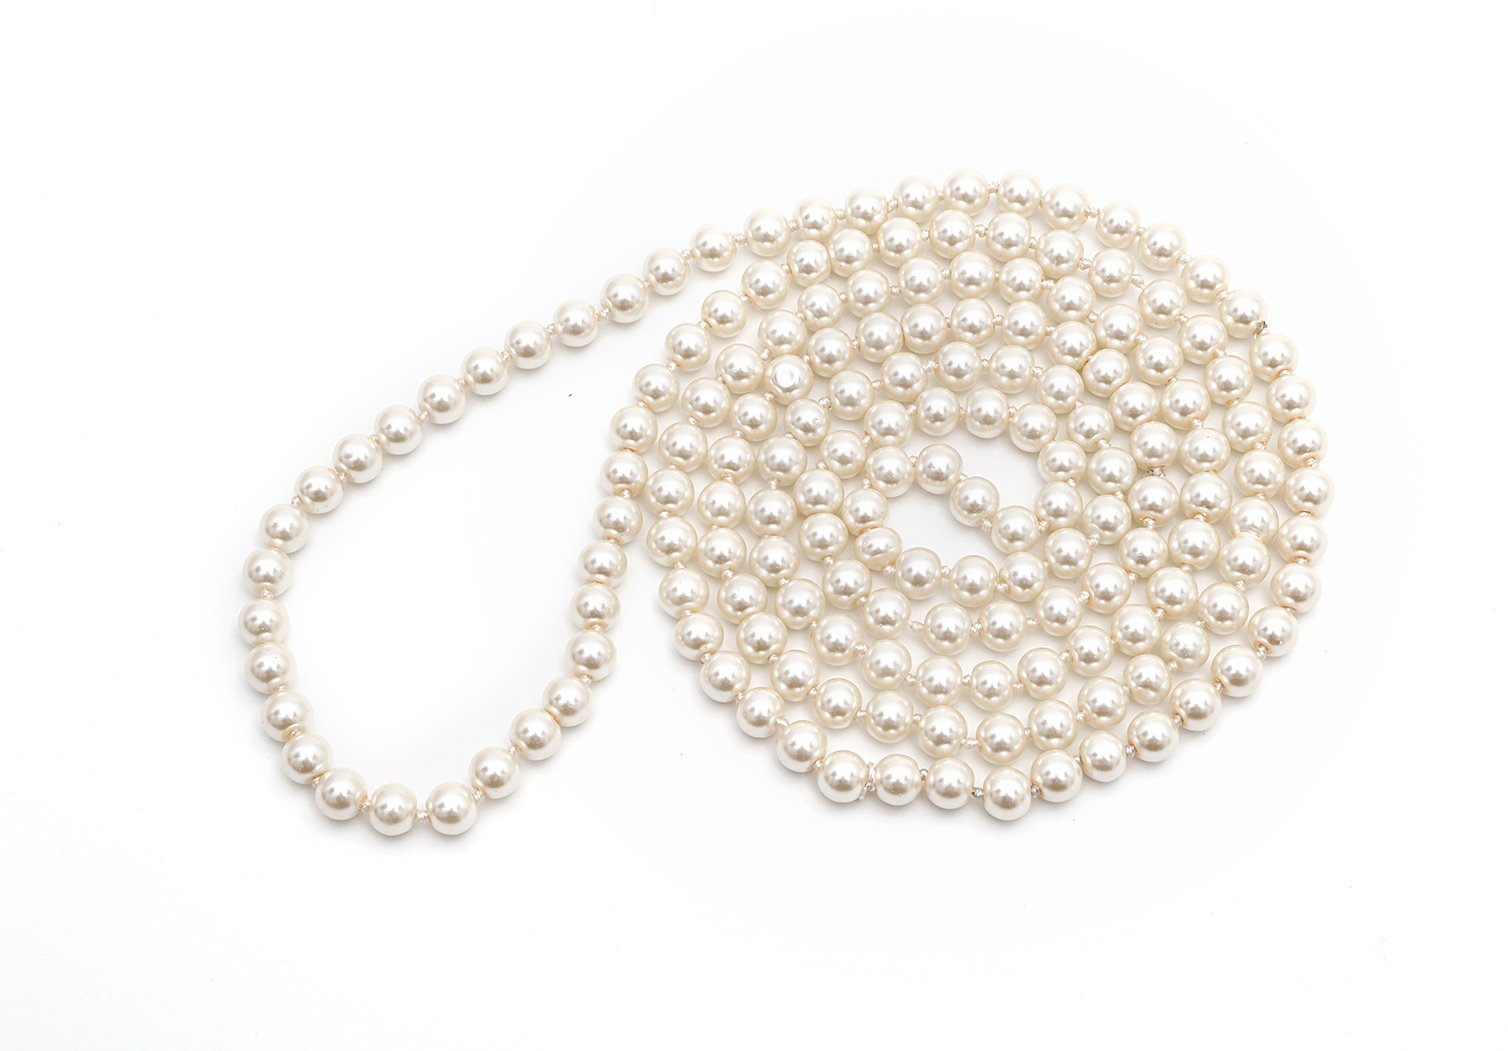 LILY L Long Faux Pearls Flapper Beads Cluster Pearl Necklace 49'' For Women